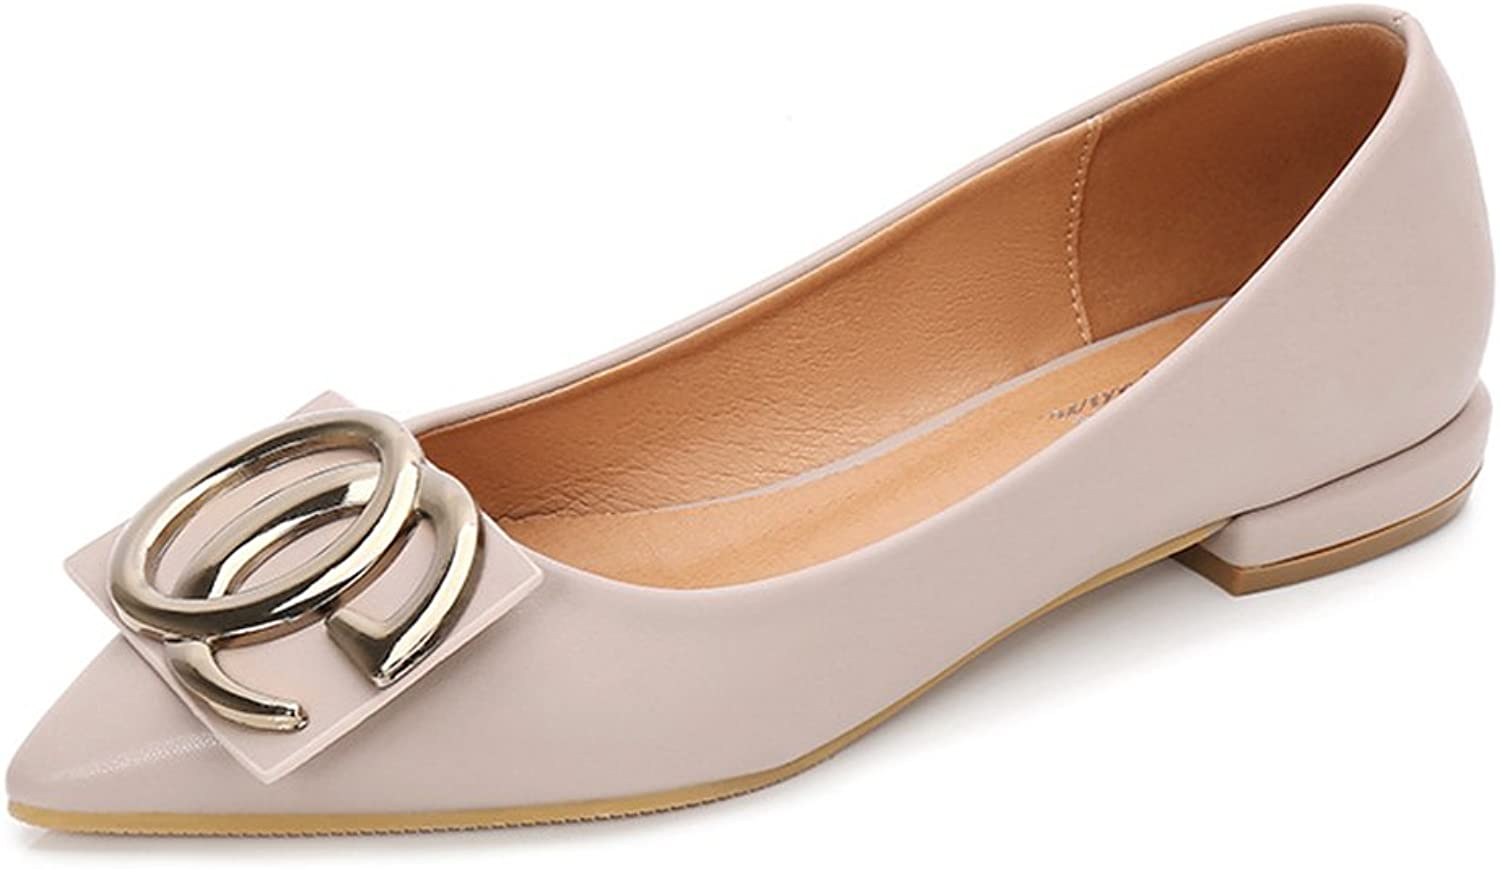 Xiaoyang Women Leather Look Ballet Flat Slip On Solid color with Grosgrain Bow for All Occasion Versatility